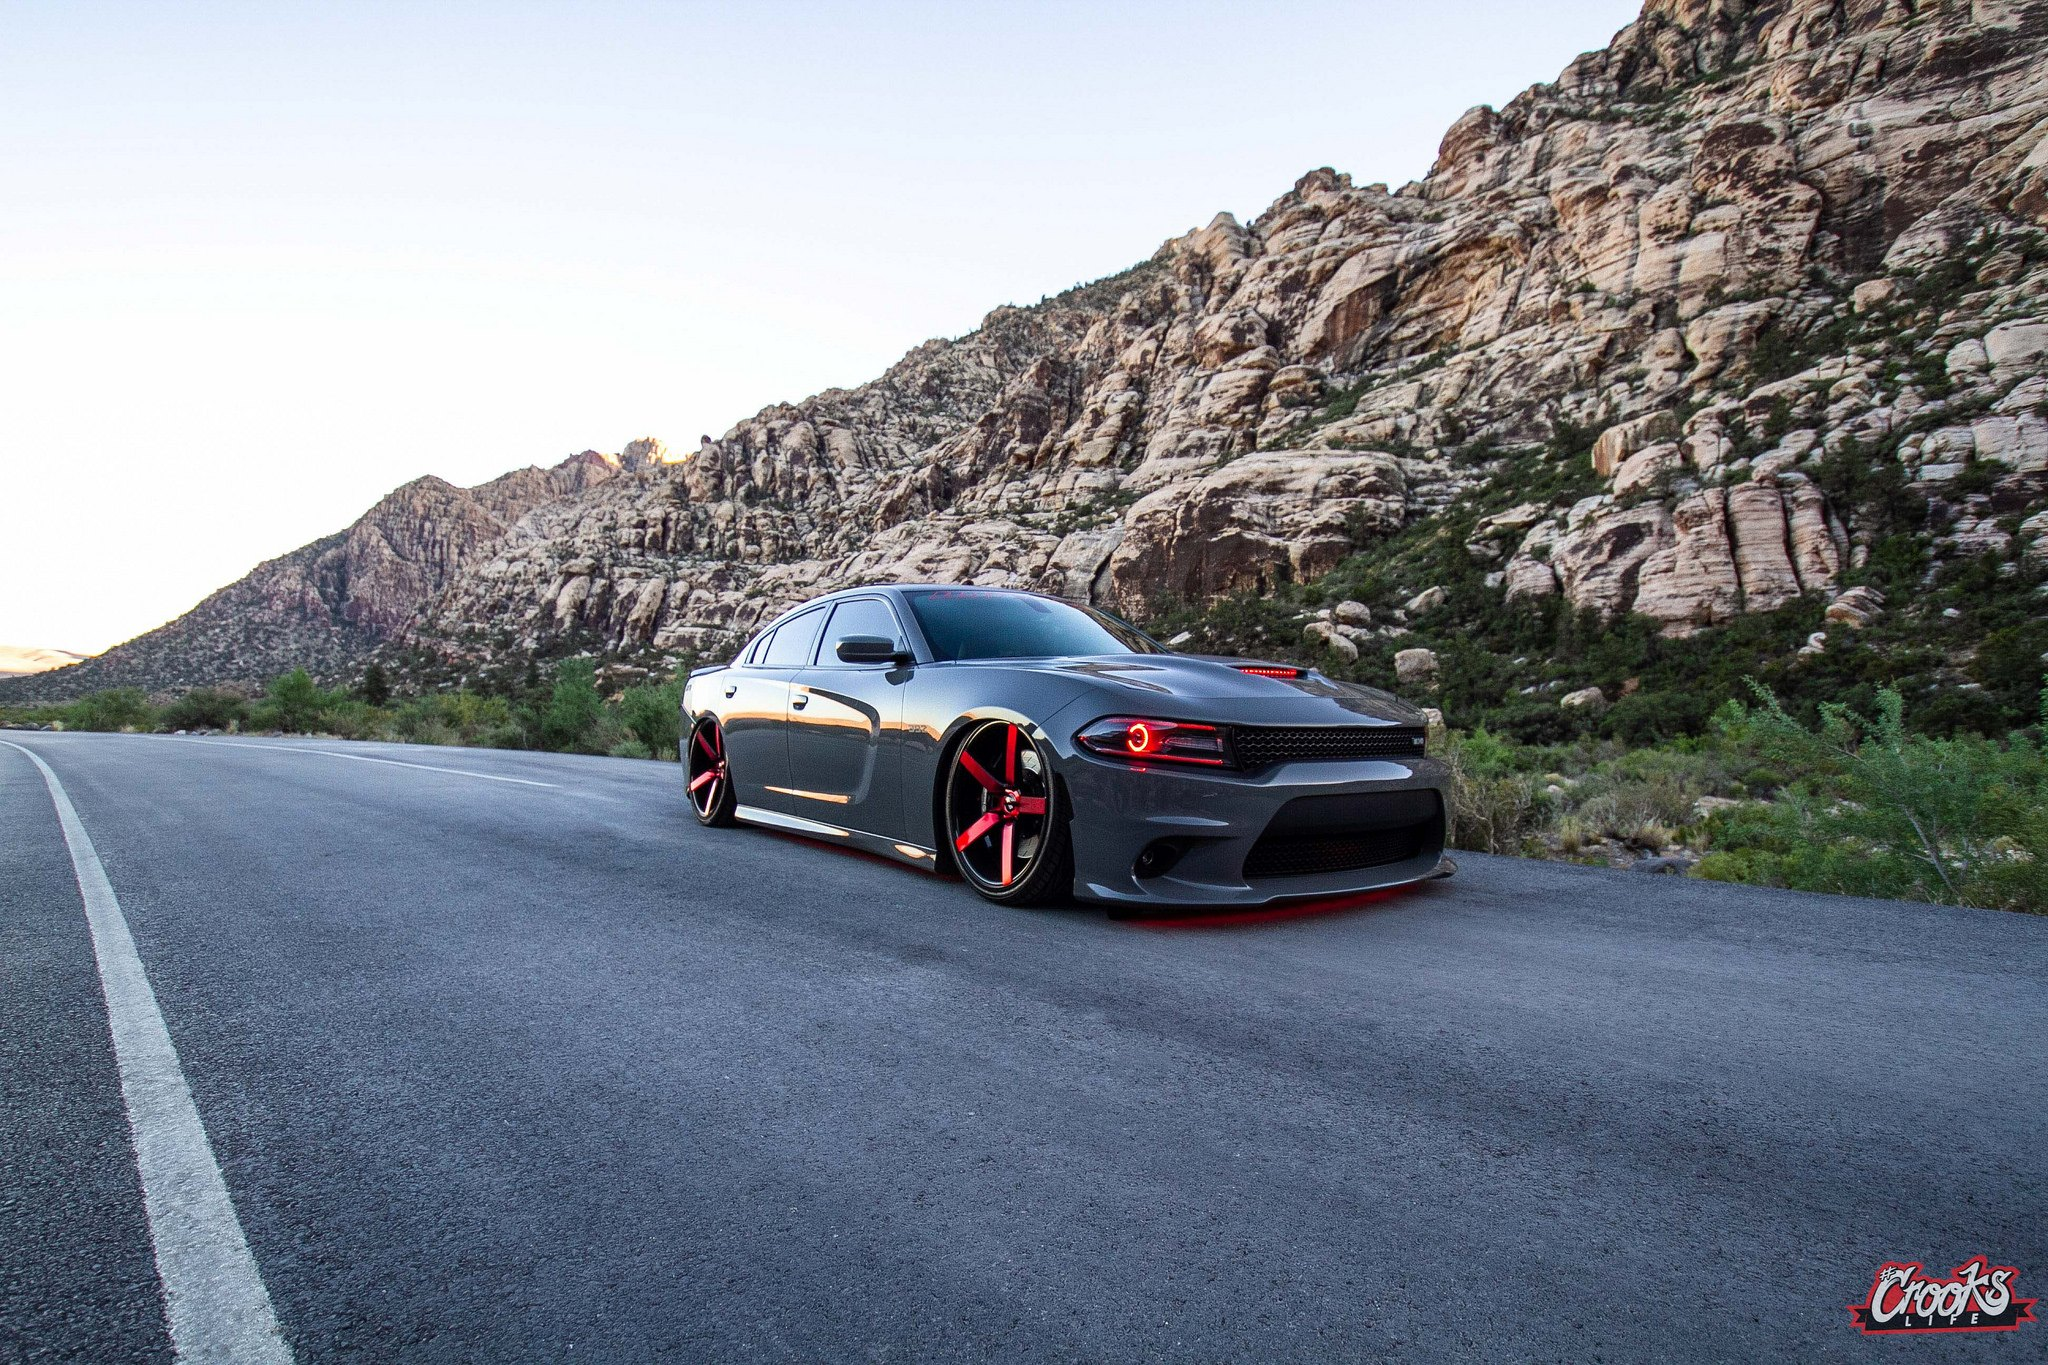 Custom Halo Headlights And Red Accents Reveal Evil And Sporty Nature Of Dodge Charger Carid Com Gallery